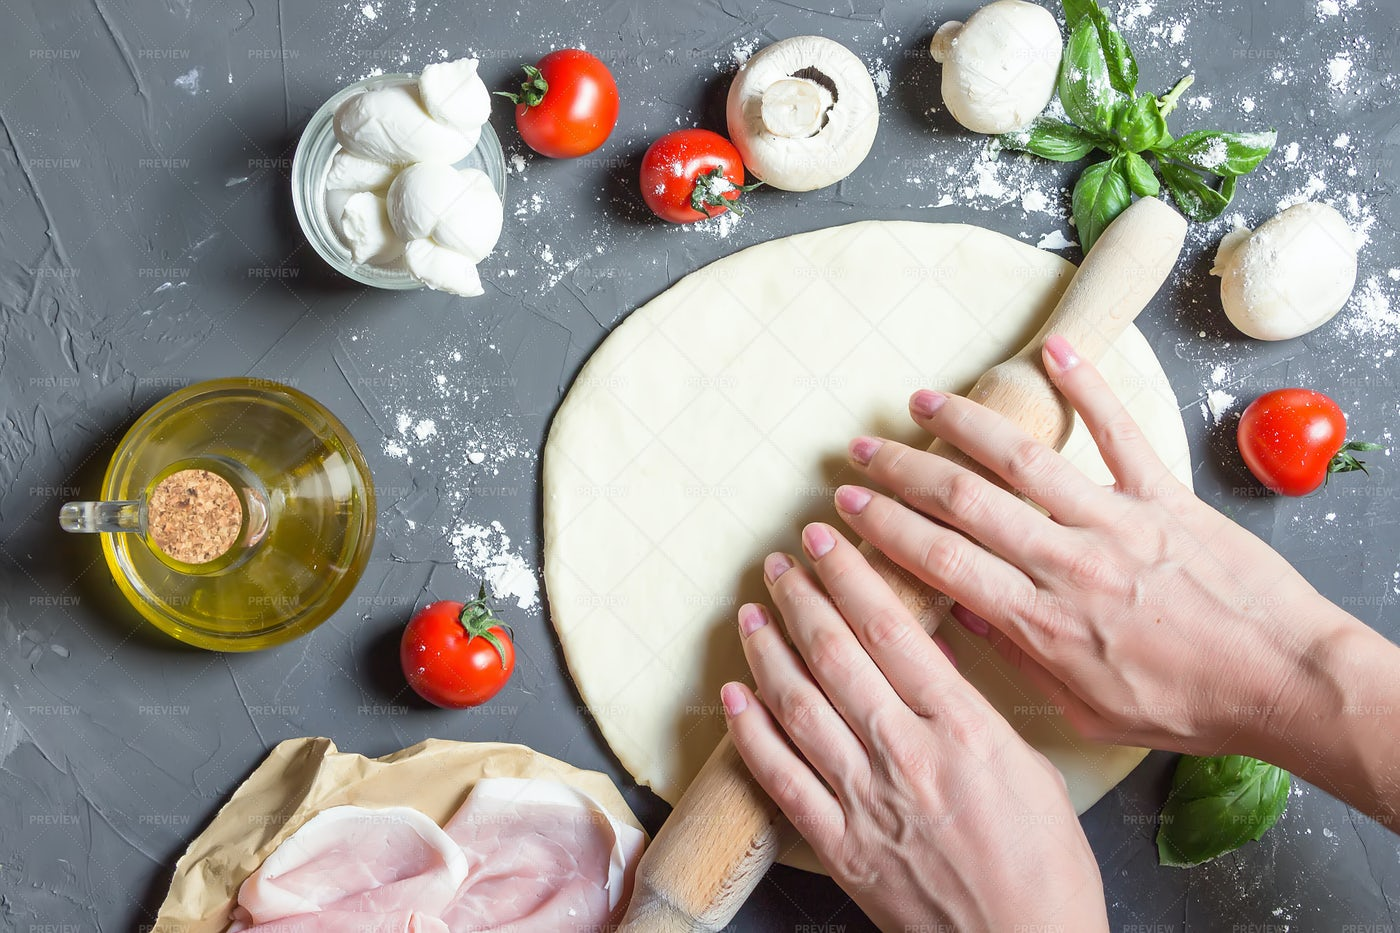 Hands Rolling Out Pizza Dough: Stock Photos